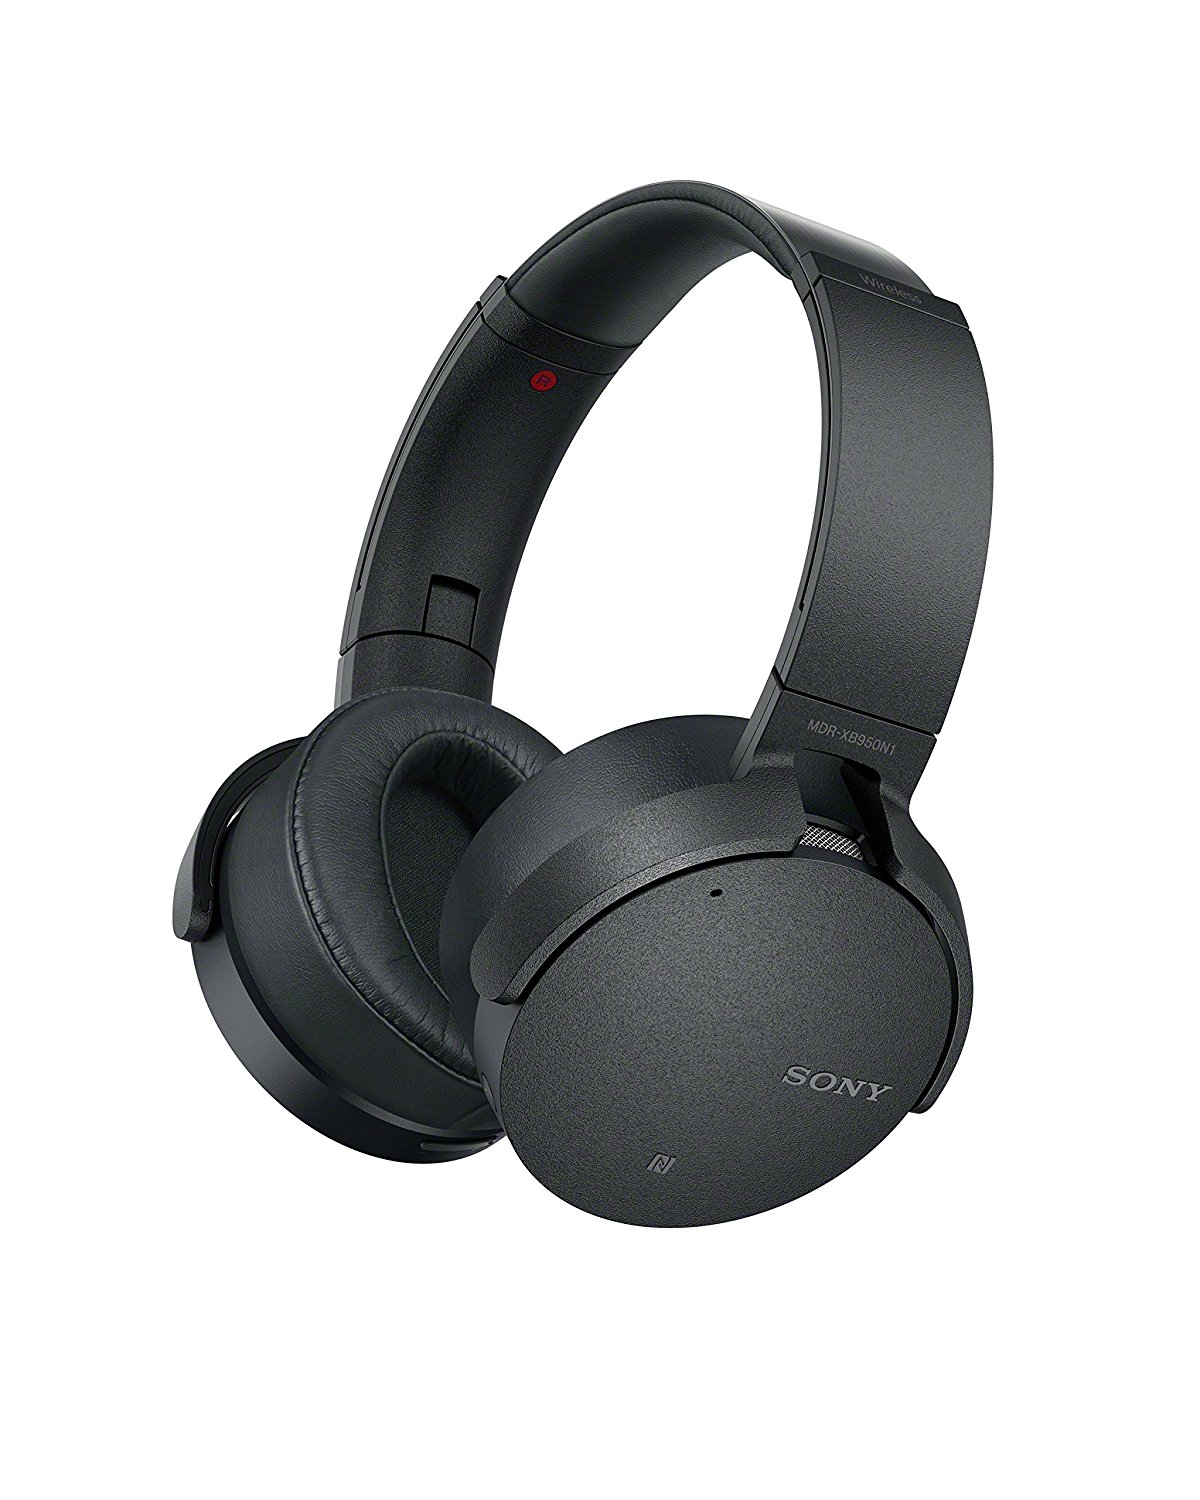 Sony MDRXB950N1 B Noise Canceling Extra Bass Wireless Headphones, Black by Sony